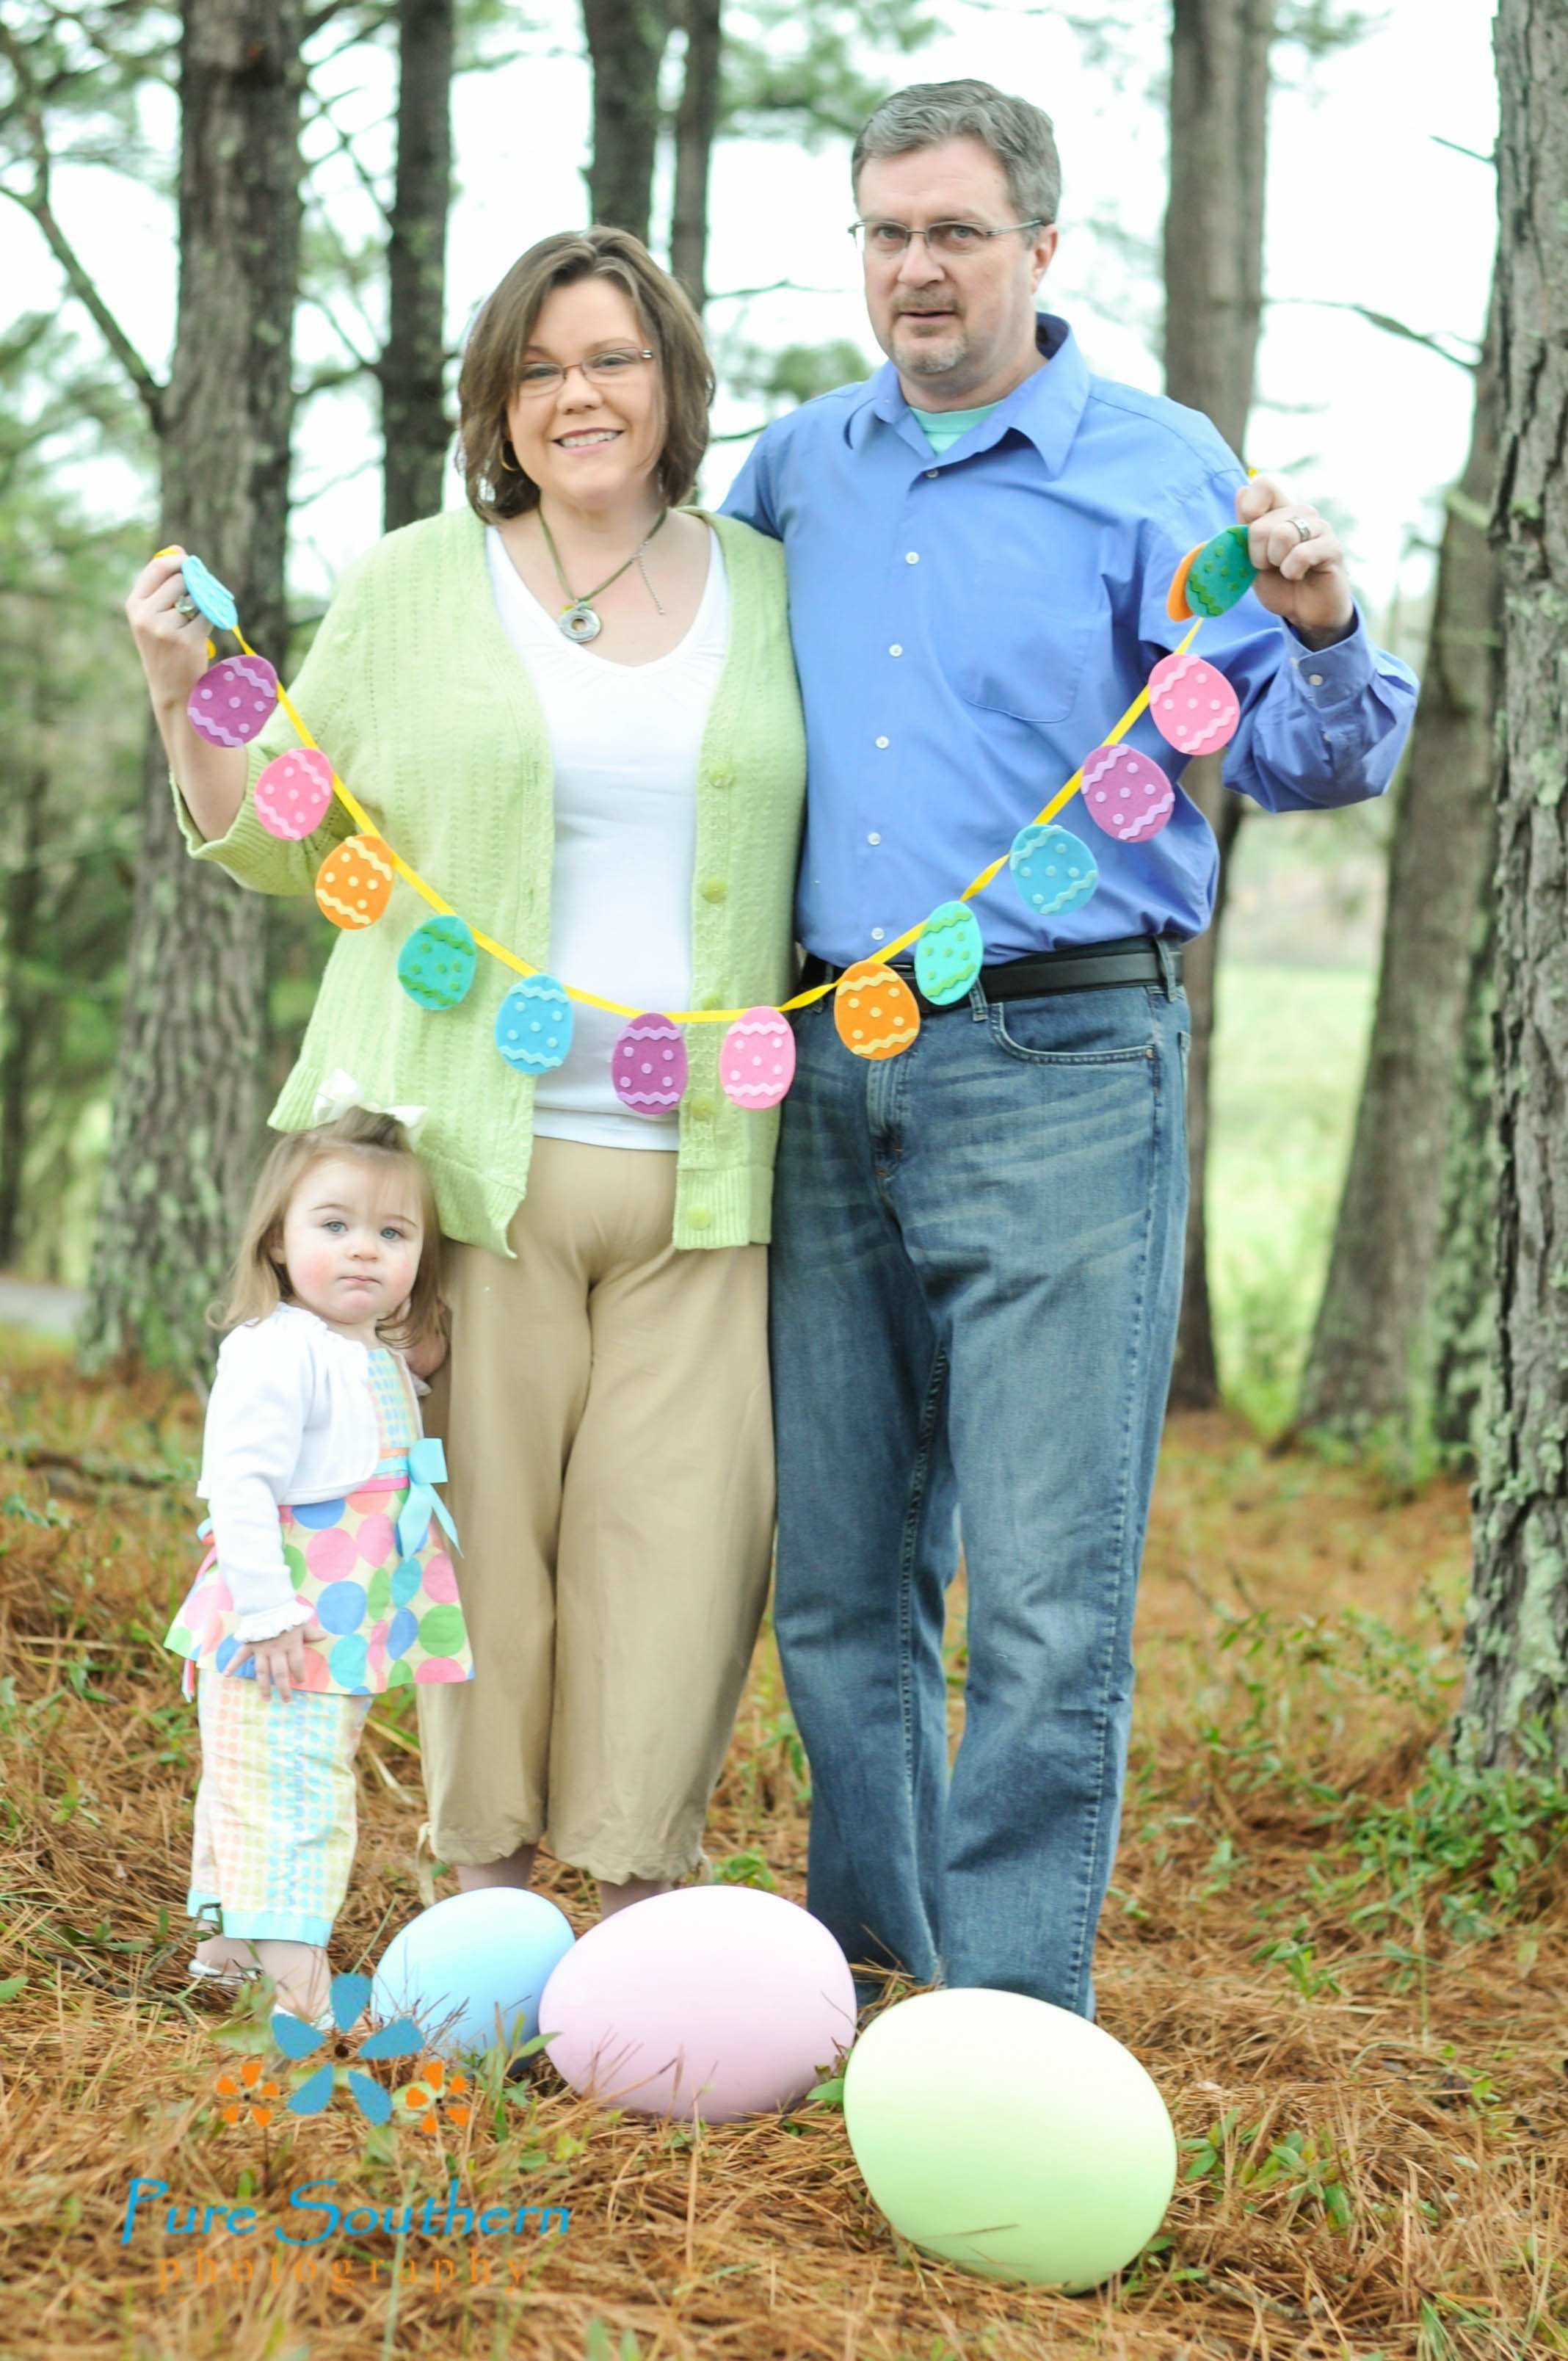 10 Best Family Photo Ideas With Toddler easter photo shoot easter photography ideas spring photo family